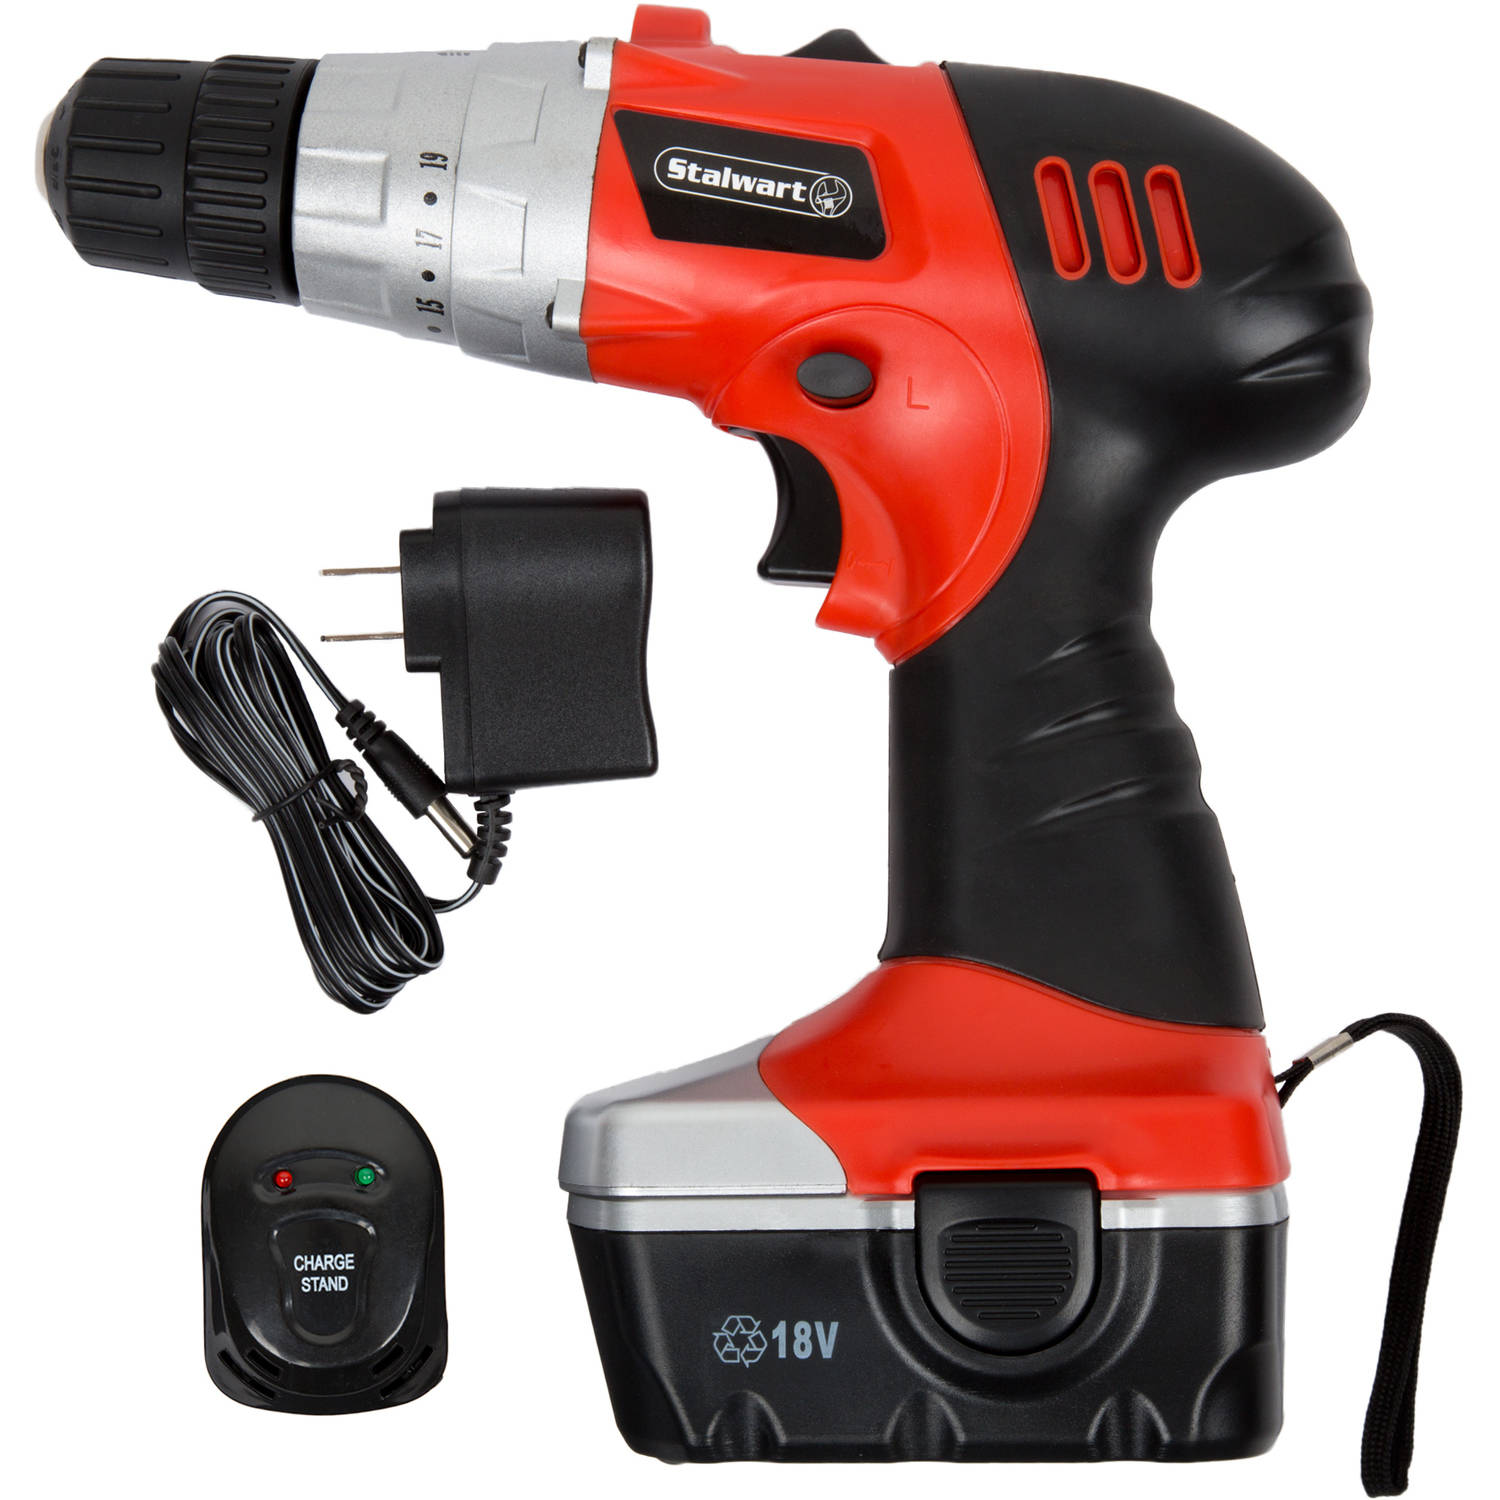 Stalwart 18-Volt Cordless Drill with LED Light